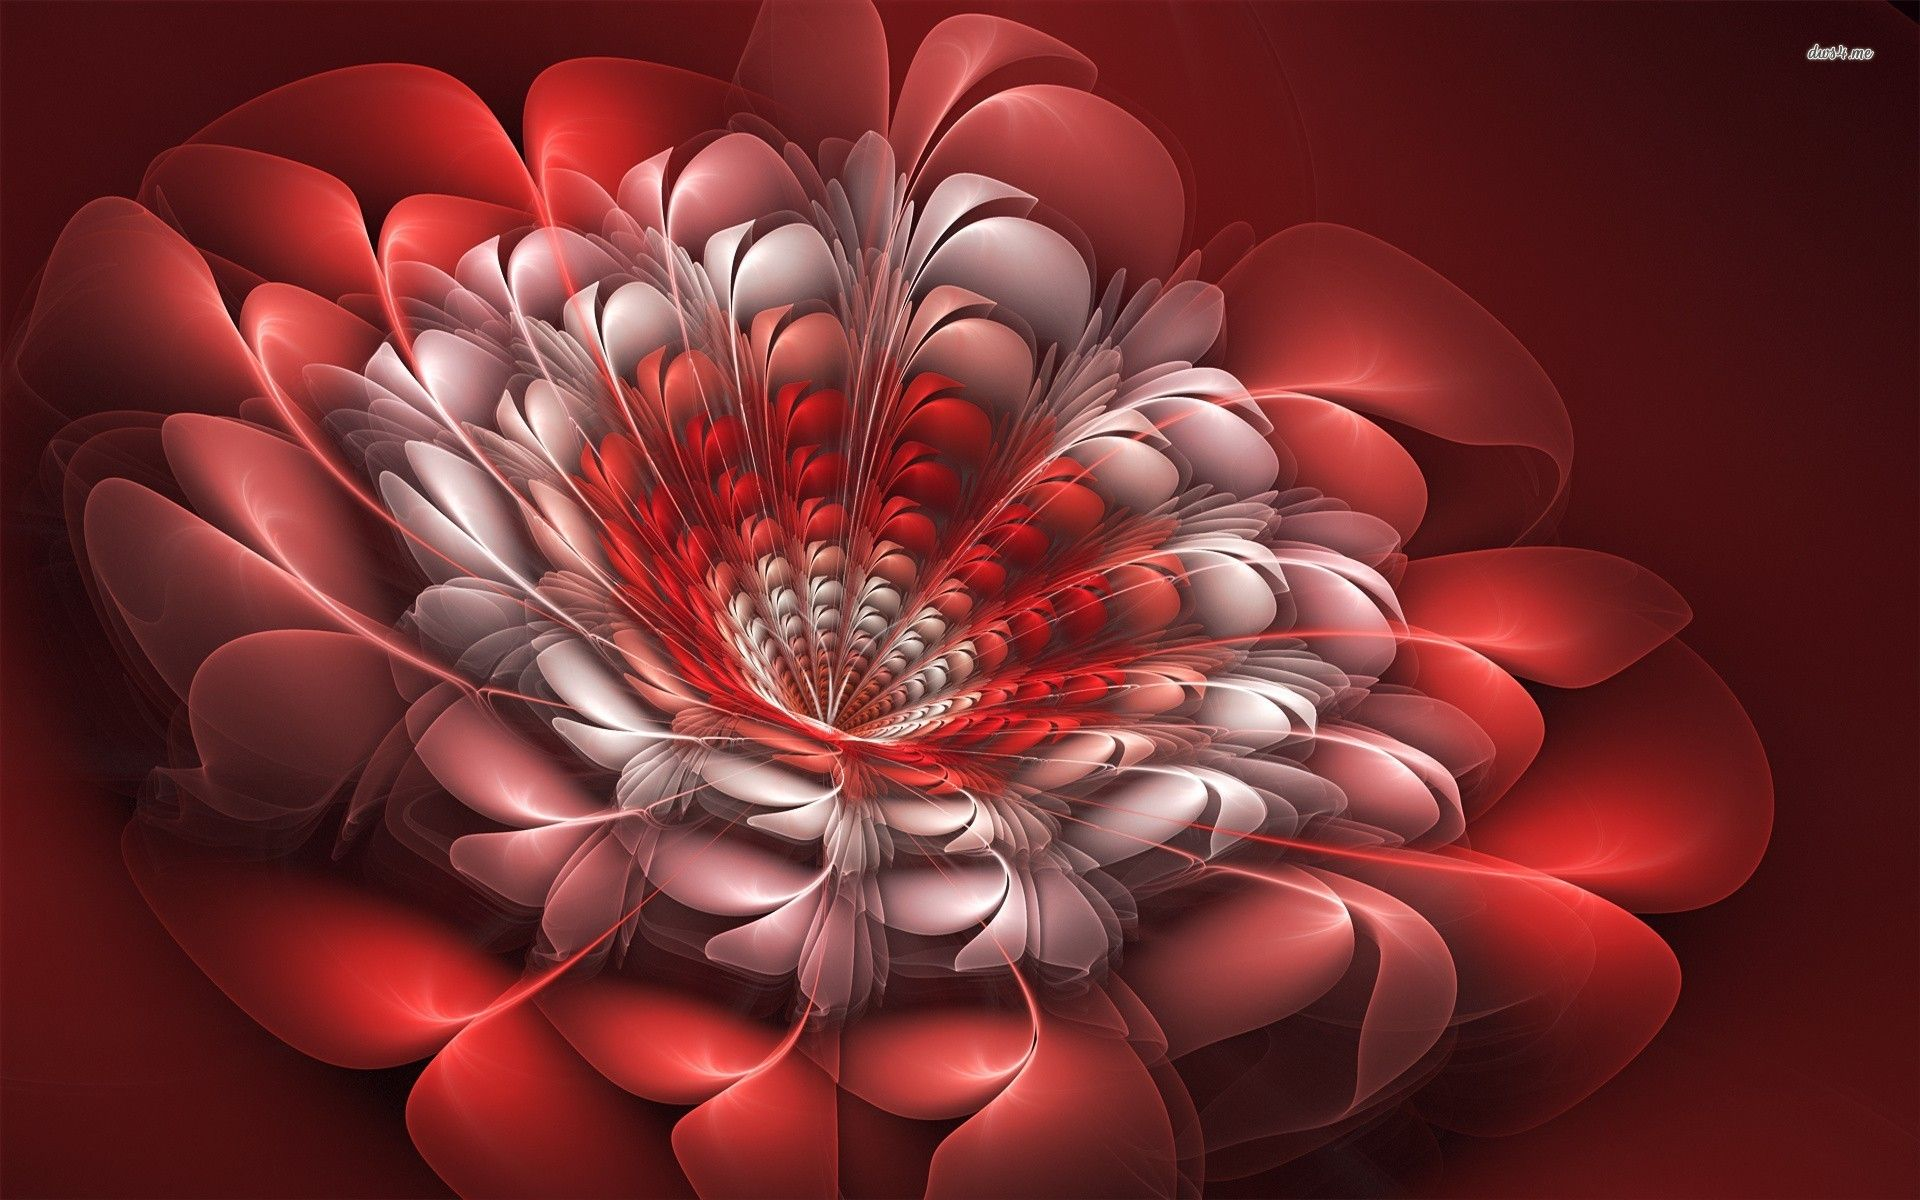 FLOWERS WALLPAPERS 3D FREE Wallpapers & Background images